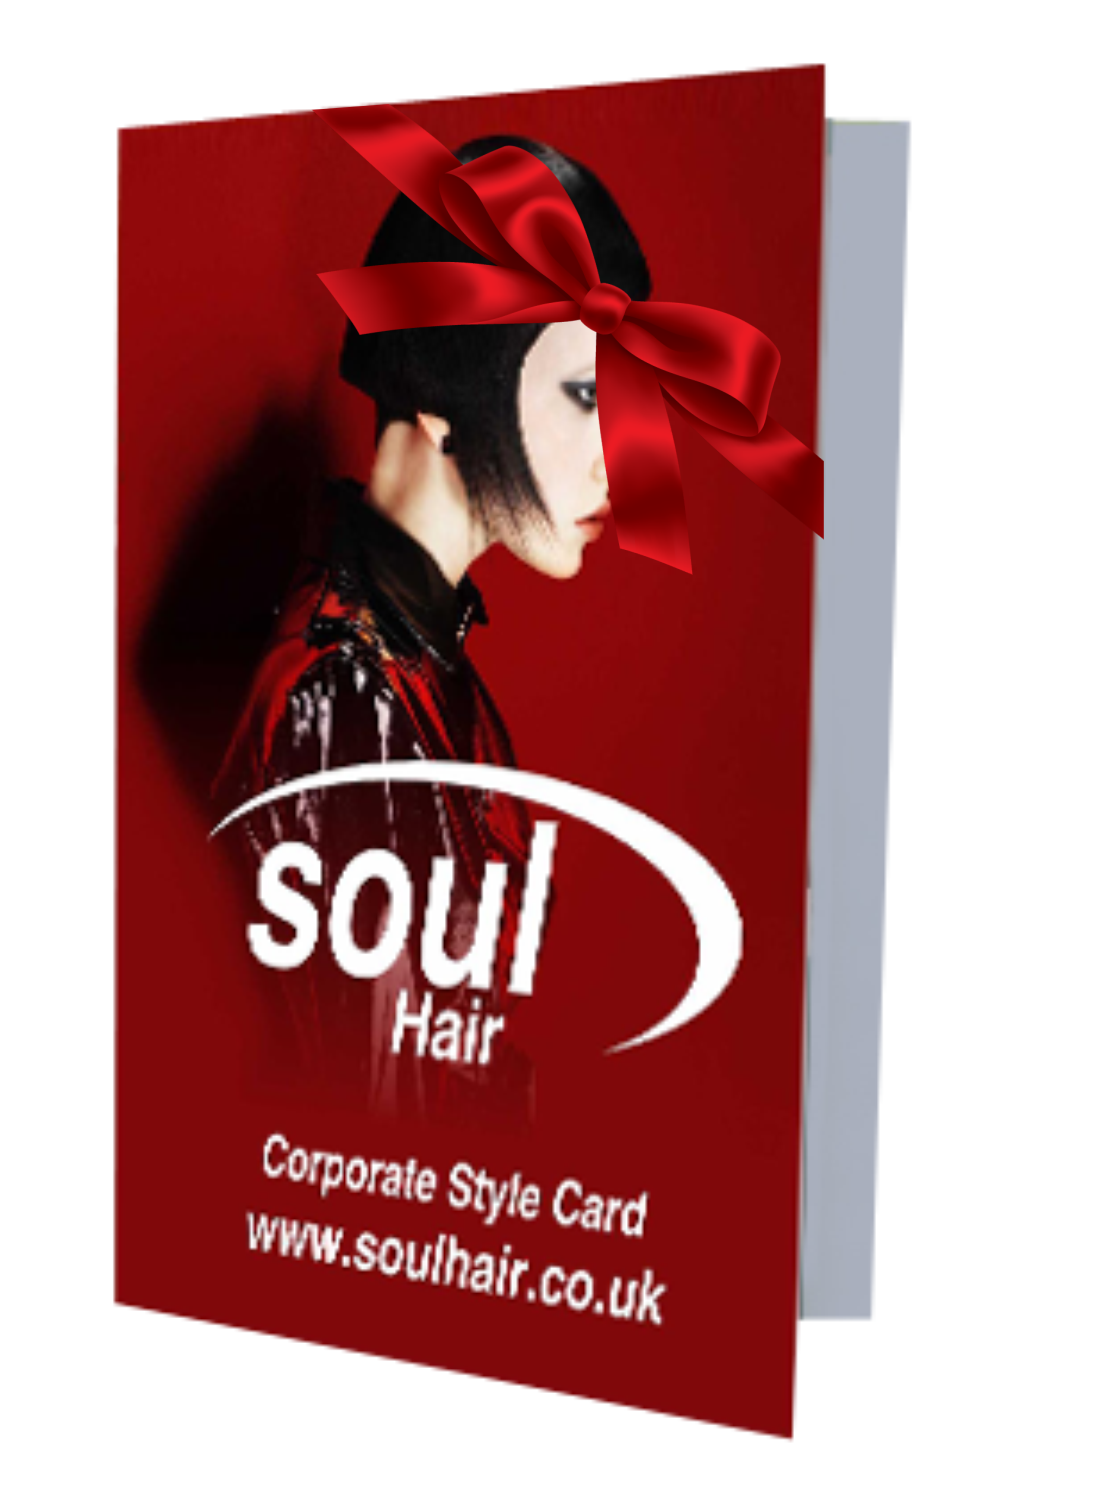 hairdresser offers Soul Hair